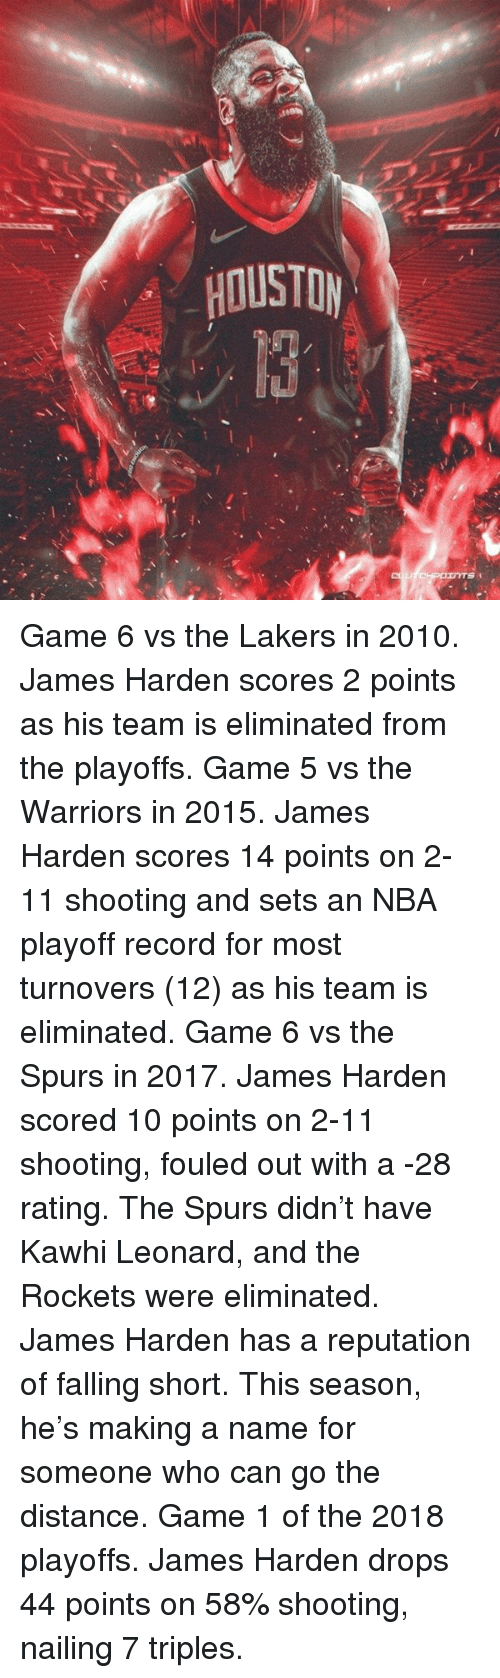 James Harden, Los Angeles Lakers, and Nba: HOUSTDY Game 6 vs the Lakers in 2010. James Harden scores 2 points as his team is eliminated from the playoffs. Game 5 vs the Warriors in 2015. James Harden scores 14 points on 2-11 shooting and sets an NBA playoff record for most turnovers (12) as his team is eliminated. Game 6 vs the Spurs in 2017. James Harden scored 10 points on 2-11 shooting, fouled out with a -28 rating. The Spurs didn't have Kawhi Leonard, and the Rockets were eliminated. James Harden has a reputation of falling short. This season, he's making a name for someone who can go the distance. Game 1 of the 2018 playoffs. James Harden drops 44 points on 58% shooting, nailing 7 triples.